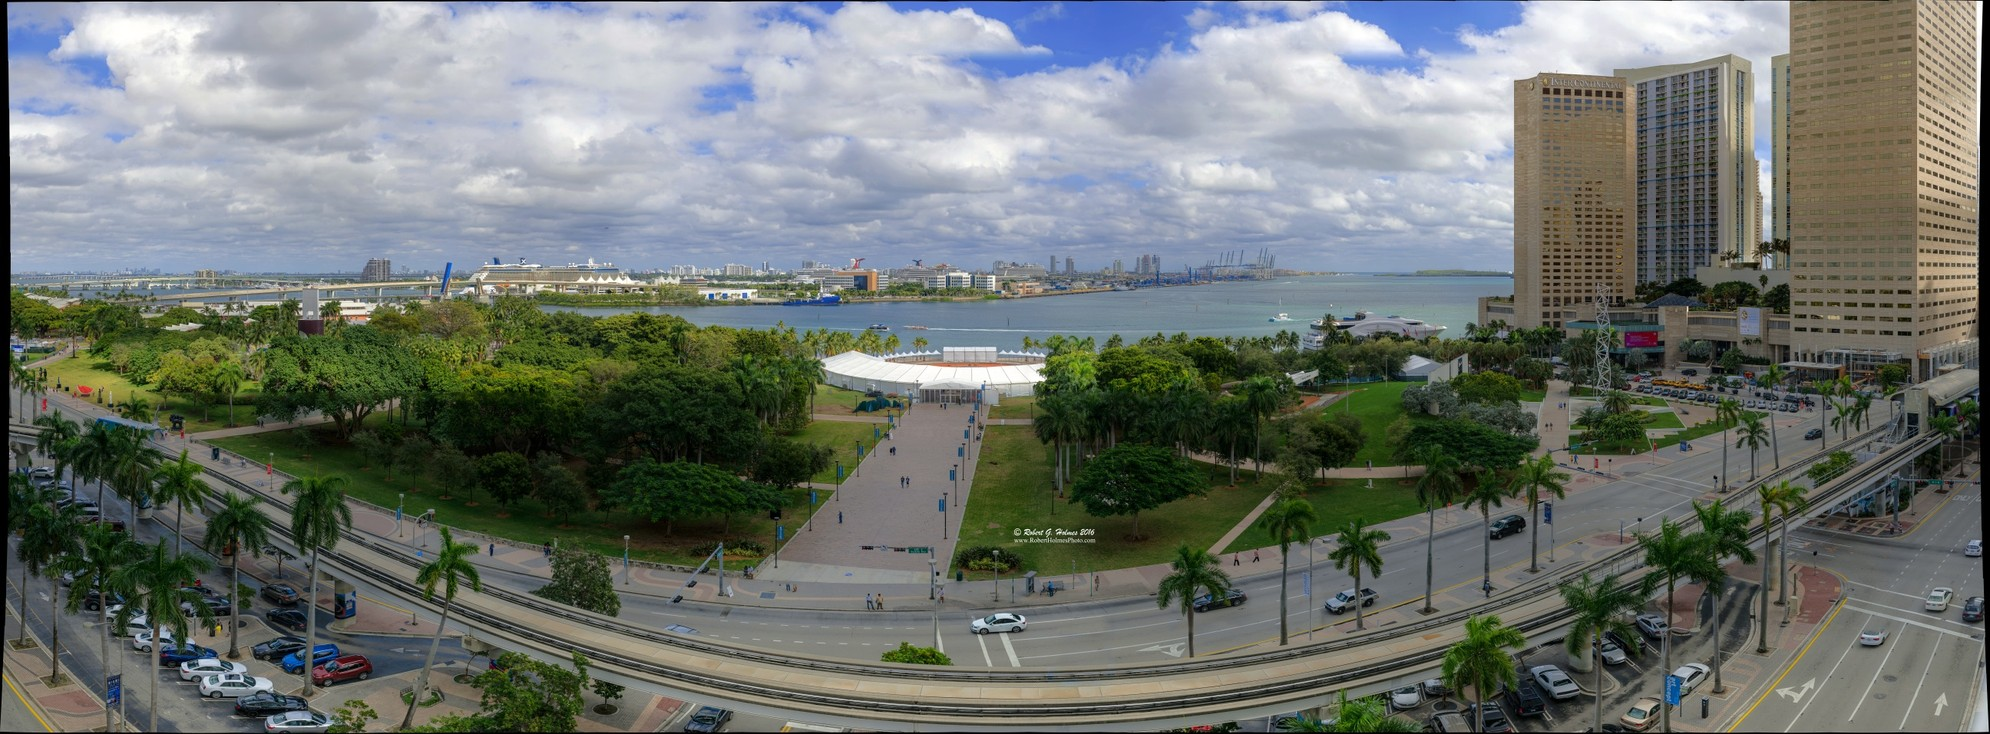 Art Concept 2016 in Downtown Miami's Bayfront Park, (extra high resolution version).